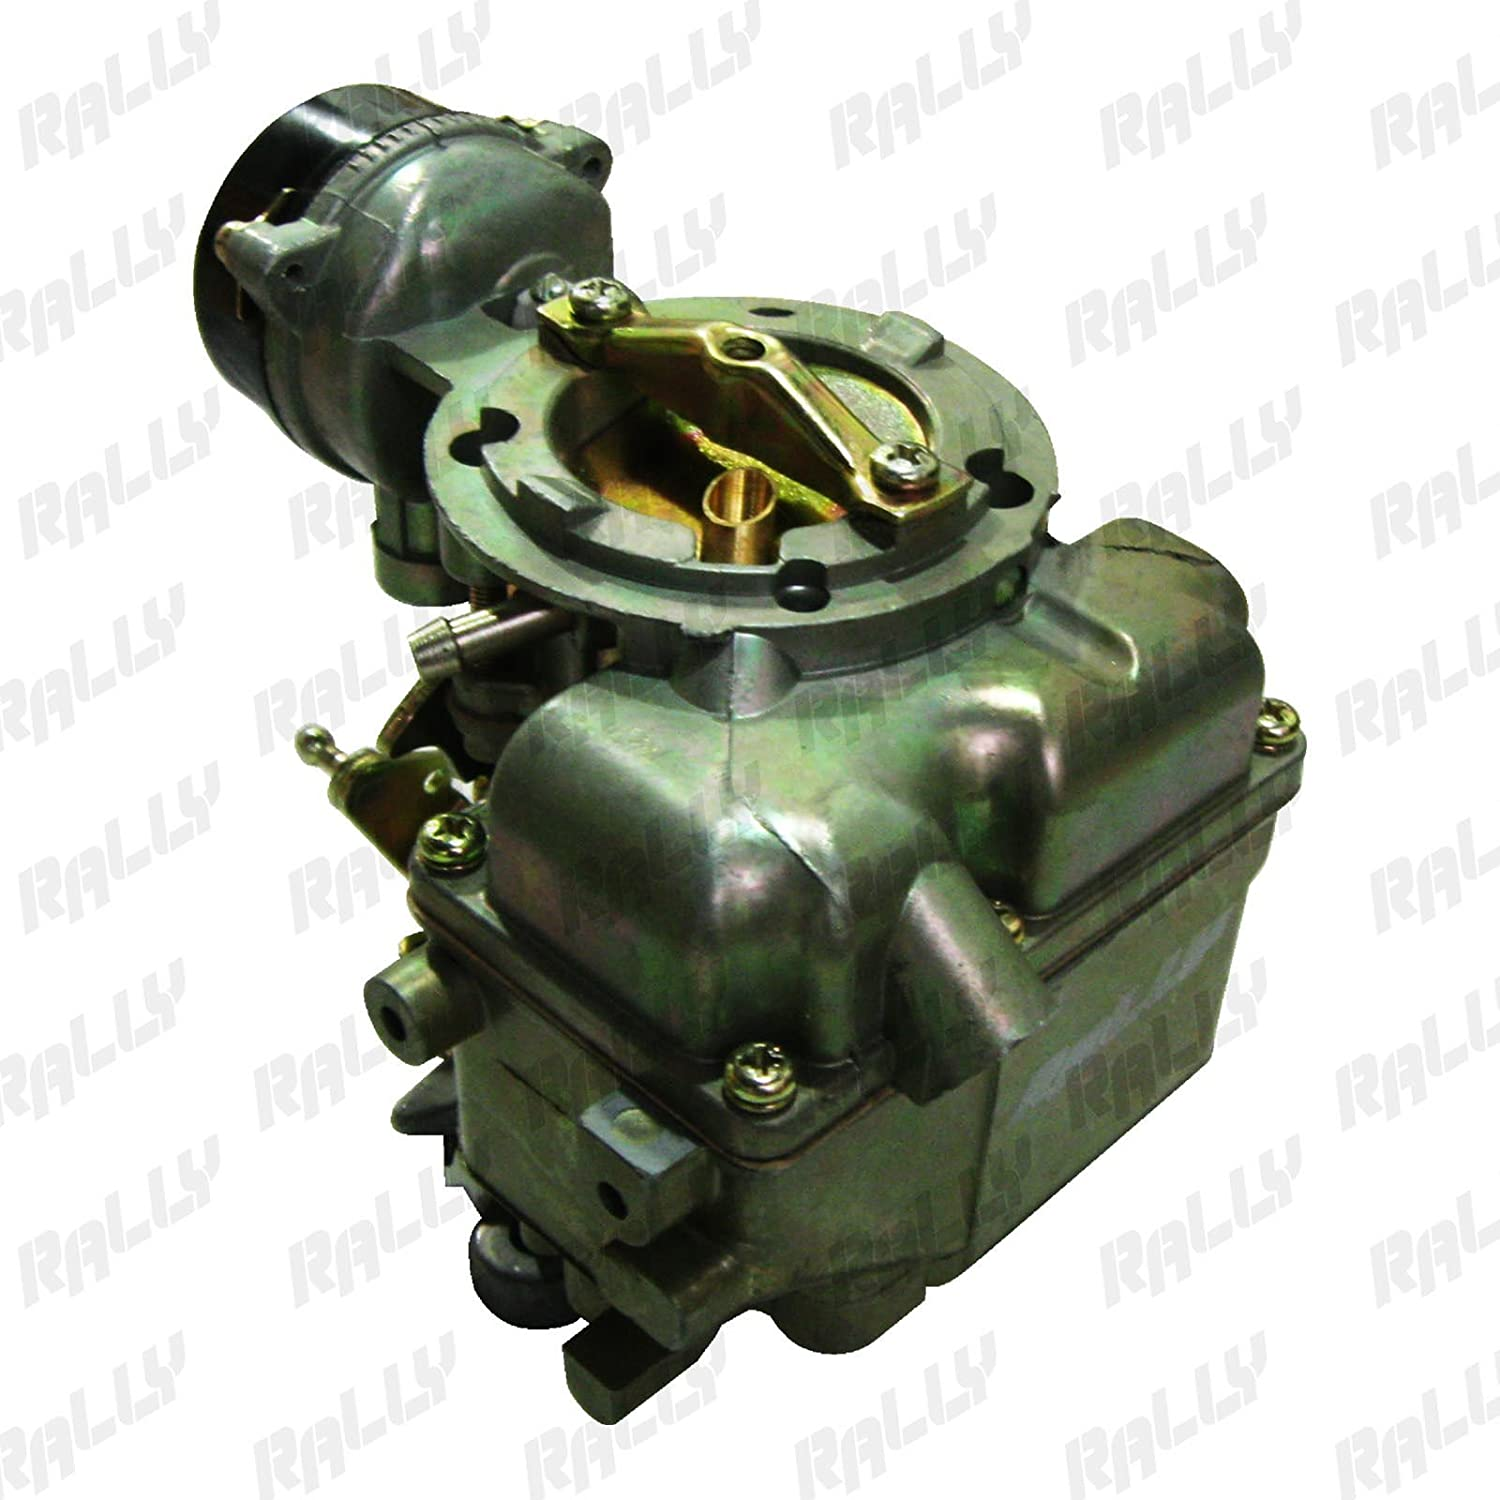 156 Carburetor Type Carter Ford 1 Barrel Yf 83 F100 Wiring Diagram Help Truck Mechanical Vacuum Choke 240 250 300 Engine Jm156 Automotive